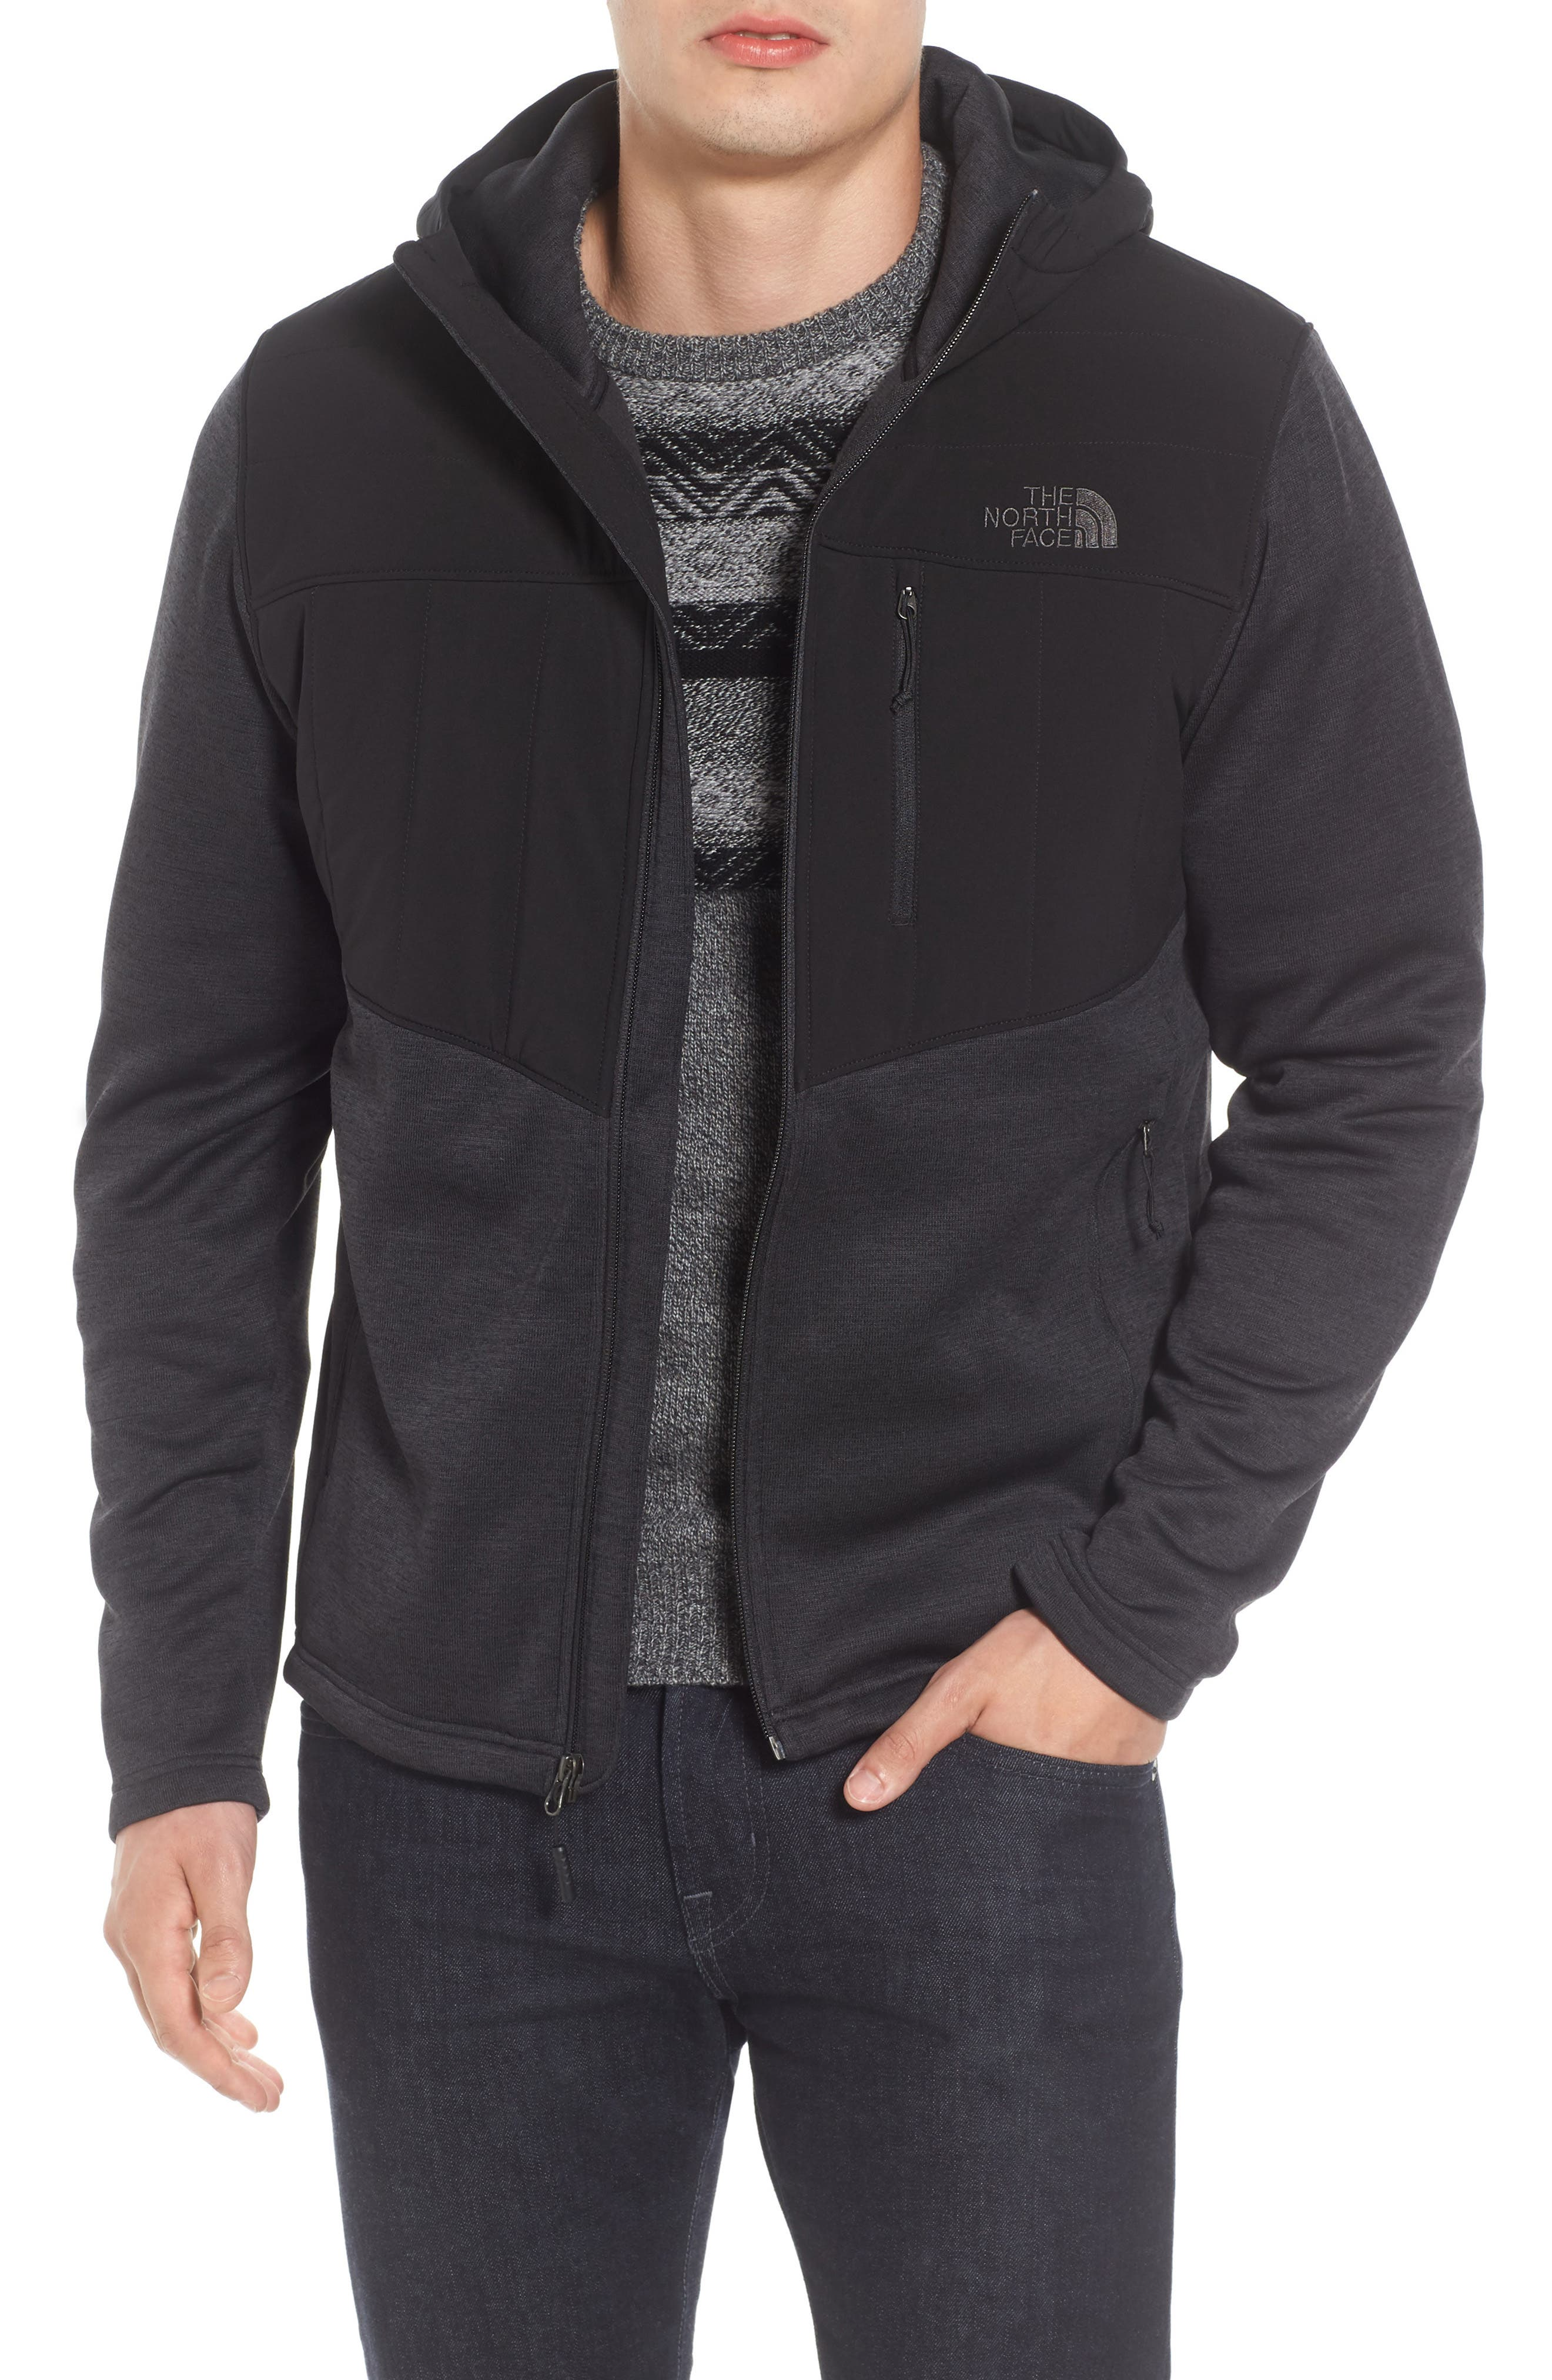 Main Image - The North Face Norris Insulated Fleece Jacket